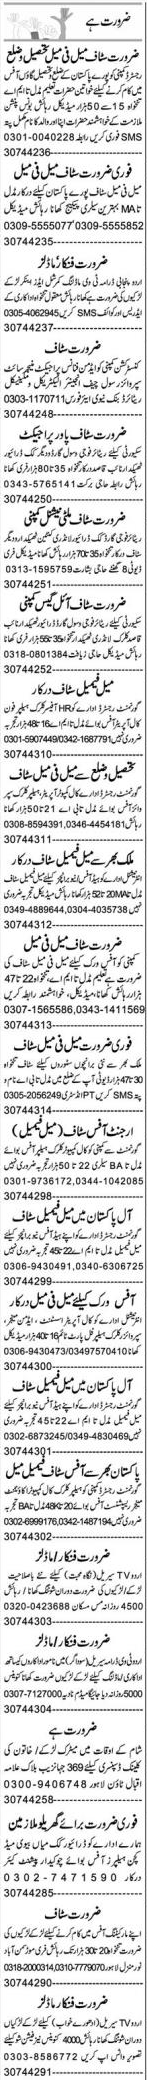 Daily Express Newspaper Classified Jobs 2020 in Lahore